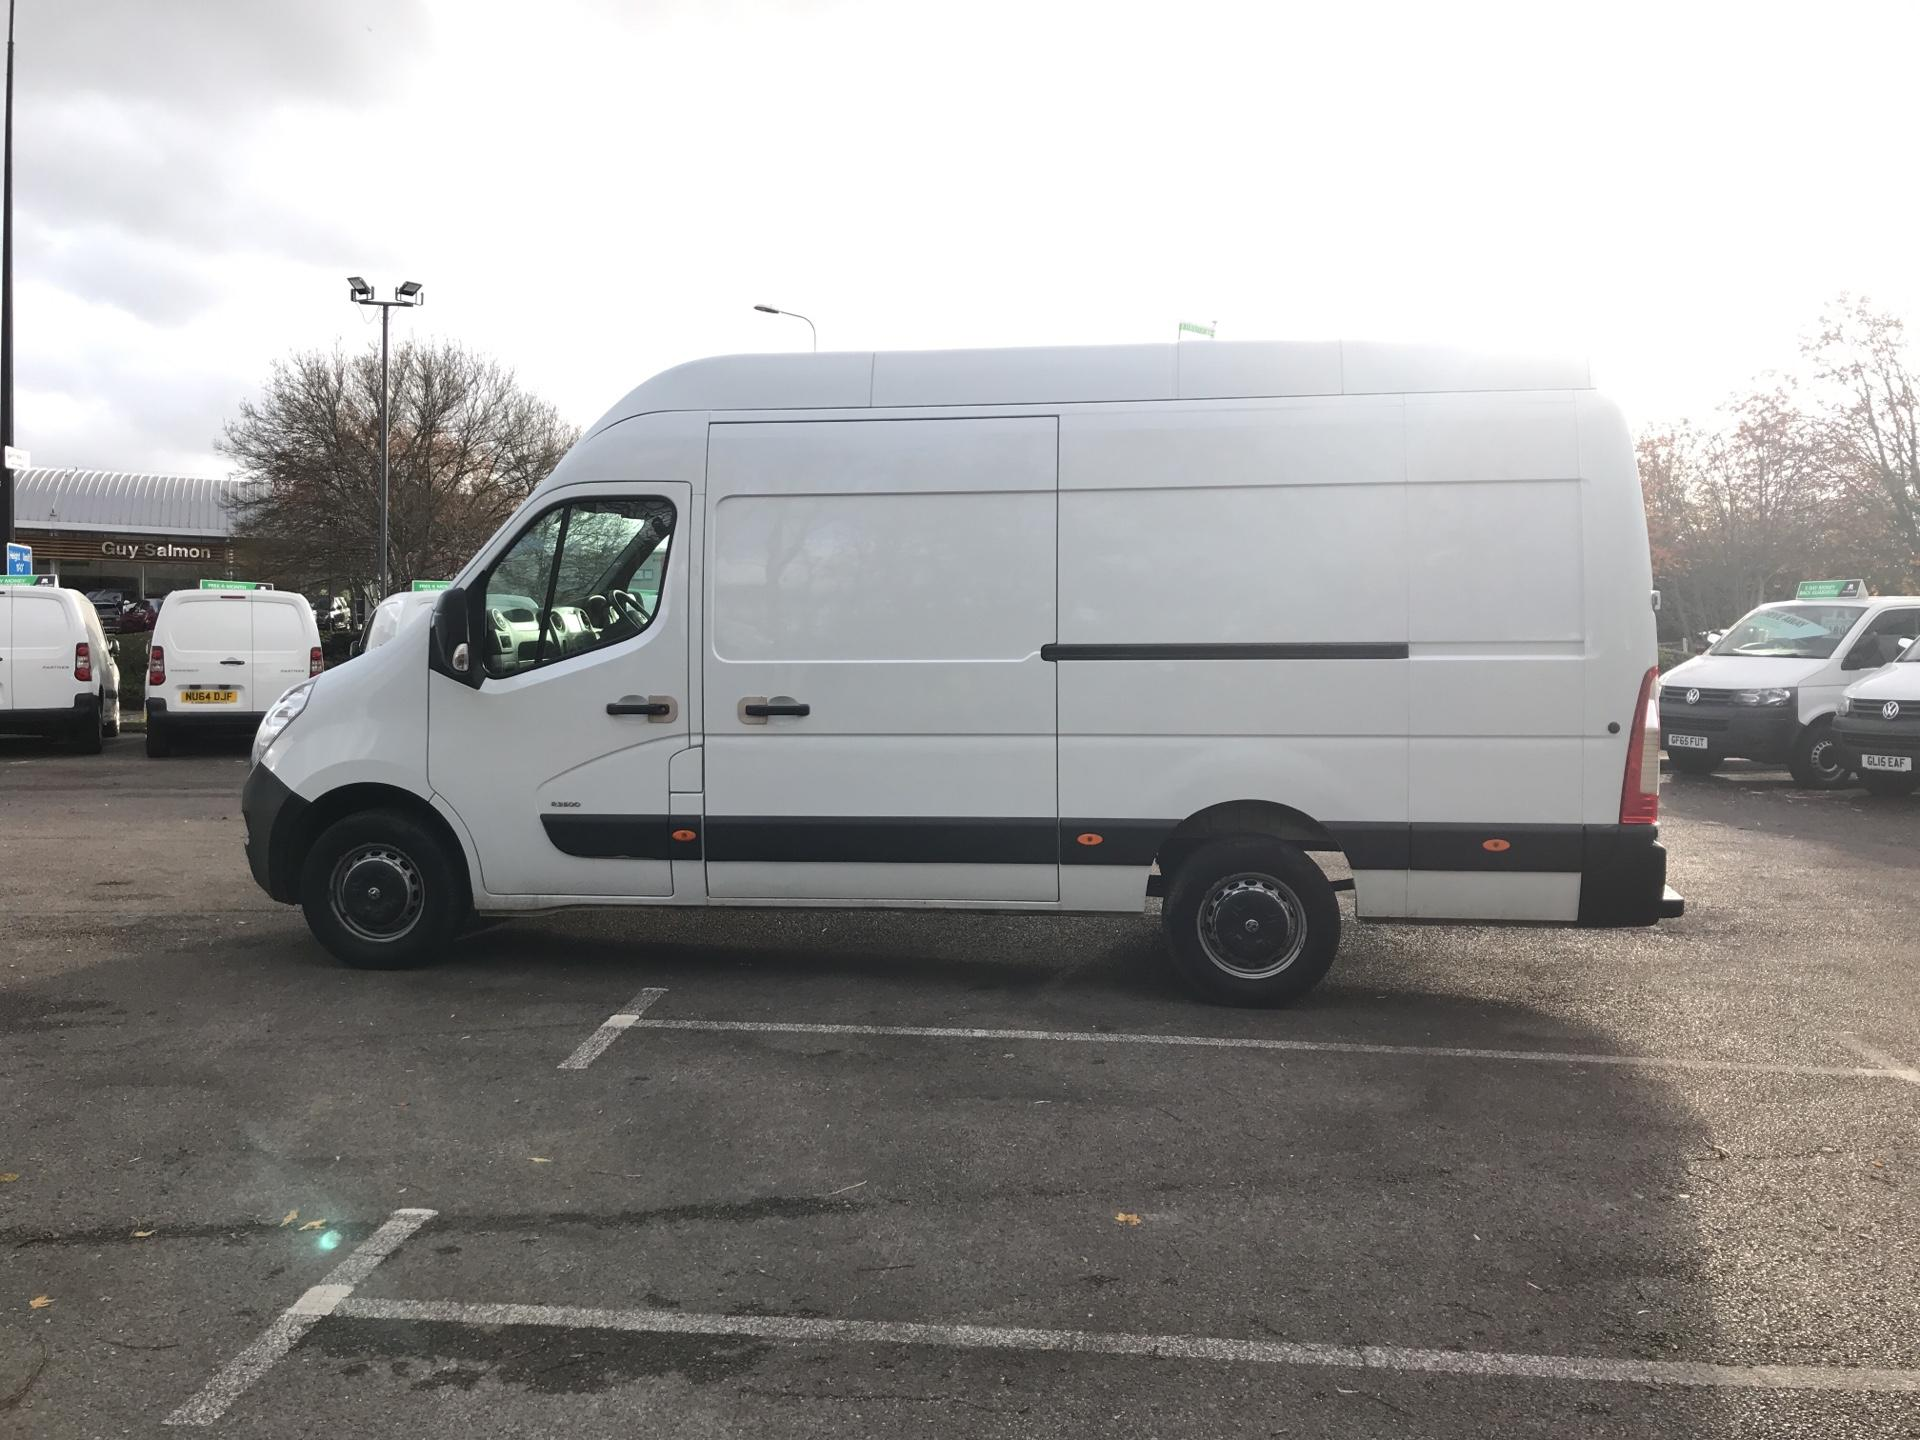 2016 Vauxhall Movano 35 L3 H3 125PS EURO 5 *Value Range Van Condition Reflected in Price* (DX16YBD) Image 6